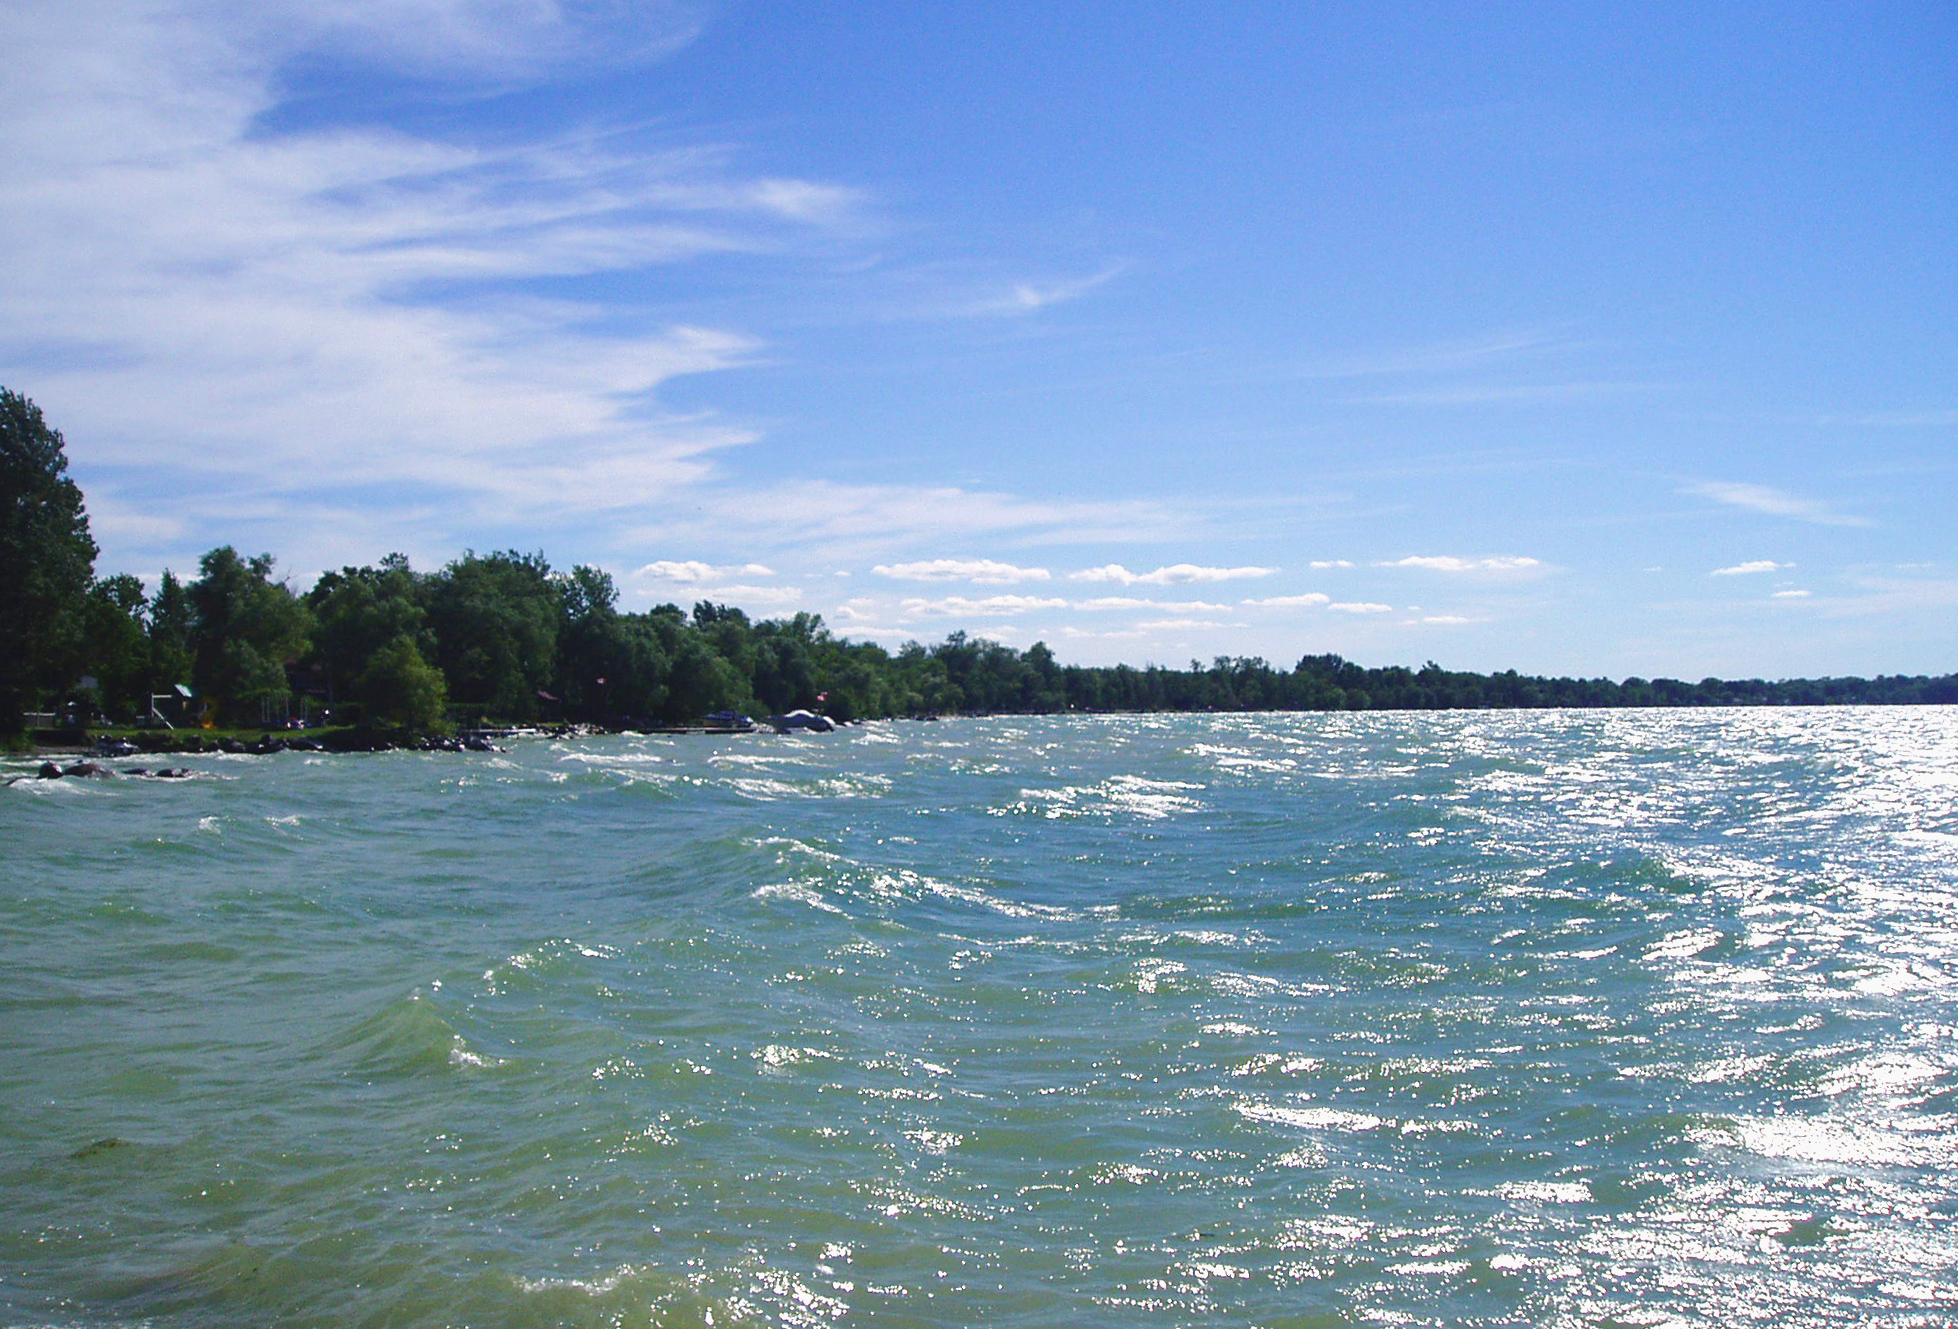 On The Water Lake Simcoe Region Conservation Authority